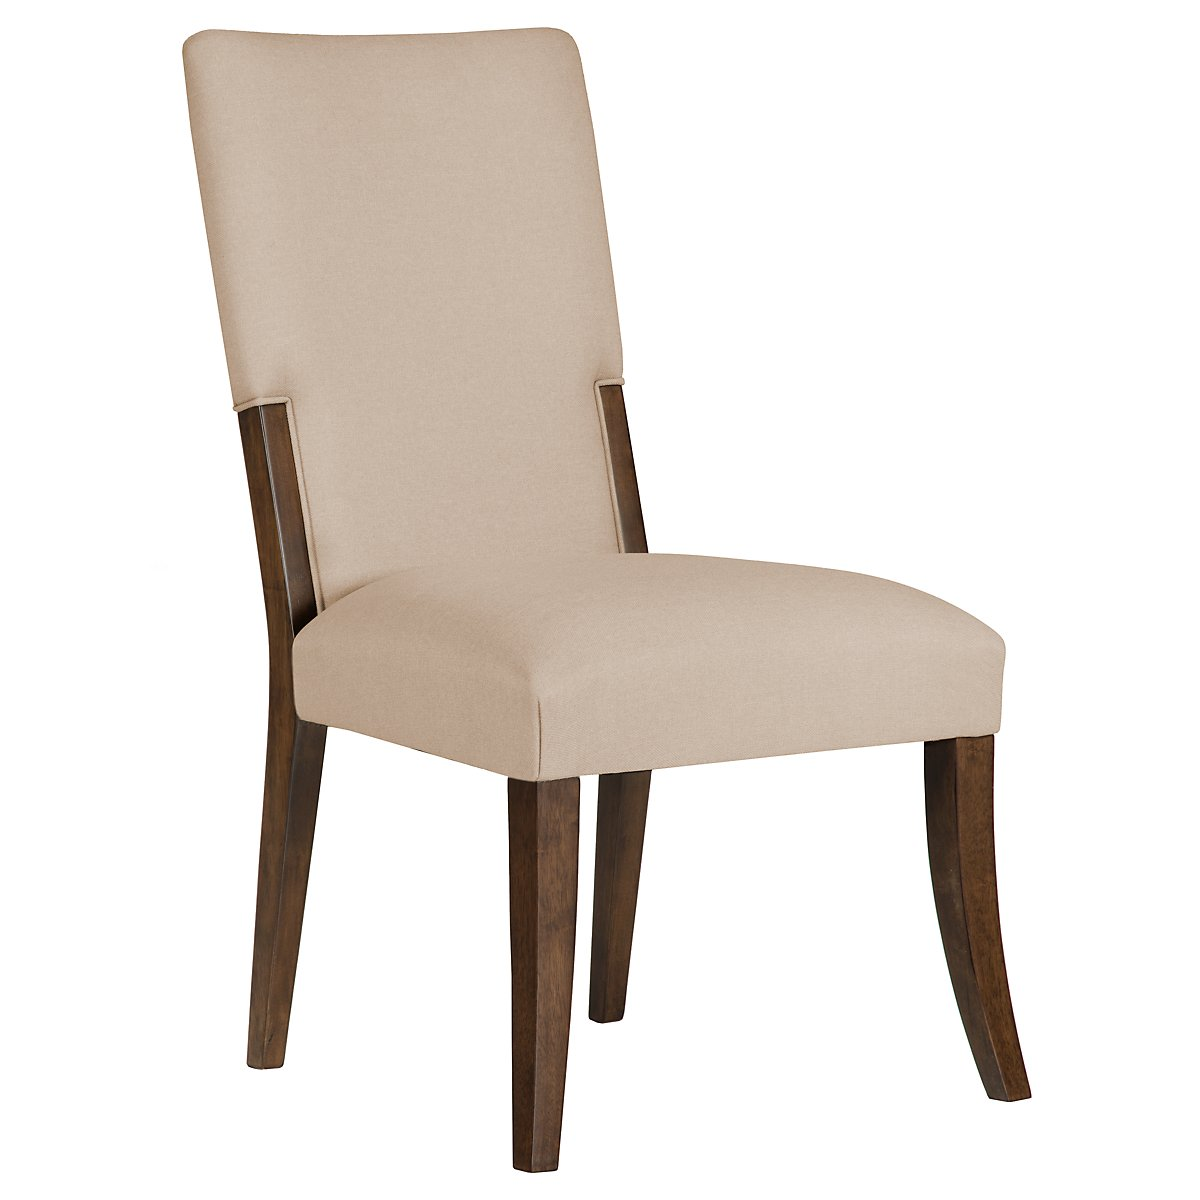 Savoy Mid Tone Upholstered Side Chair